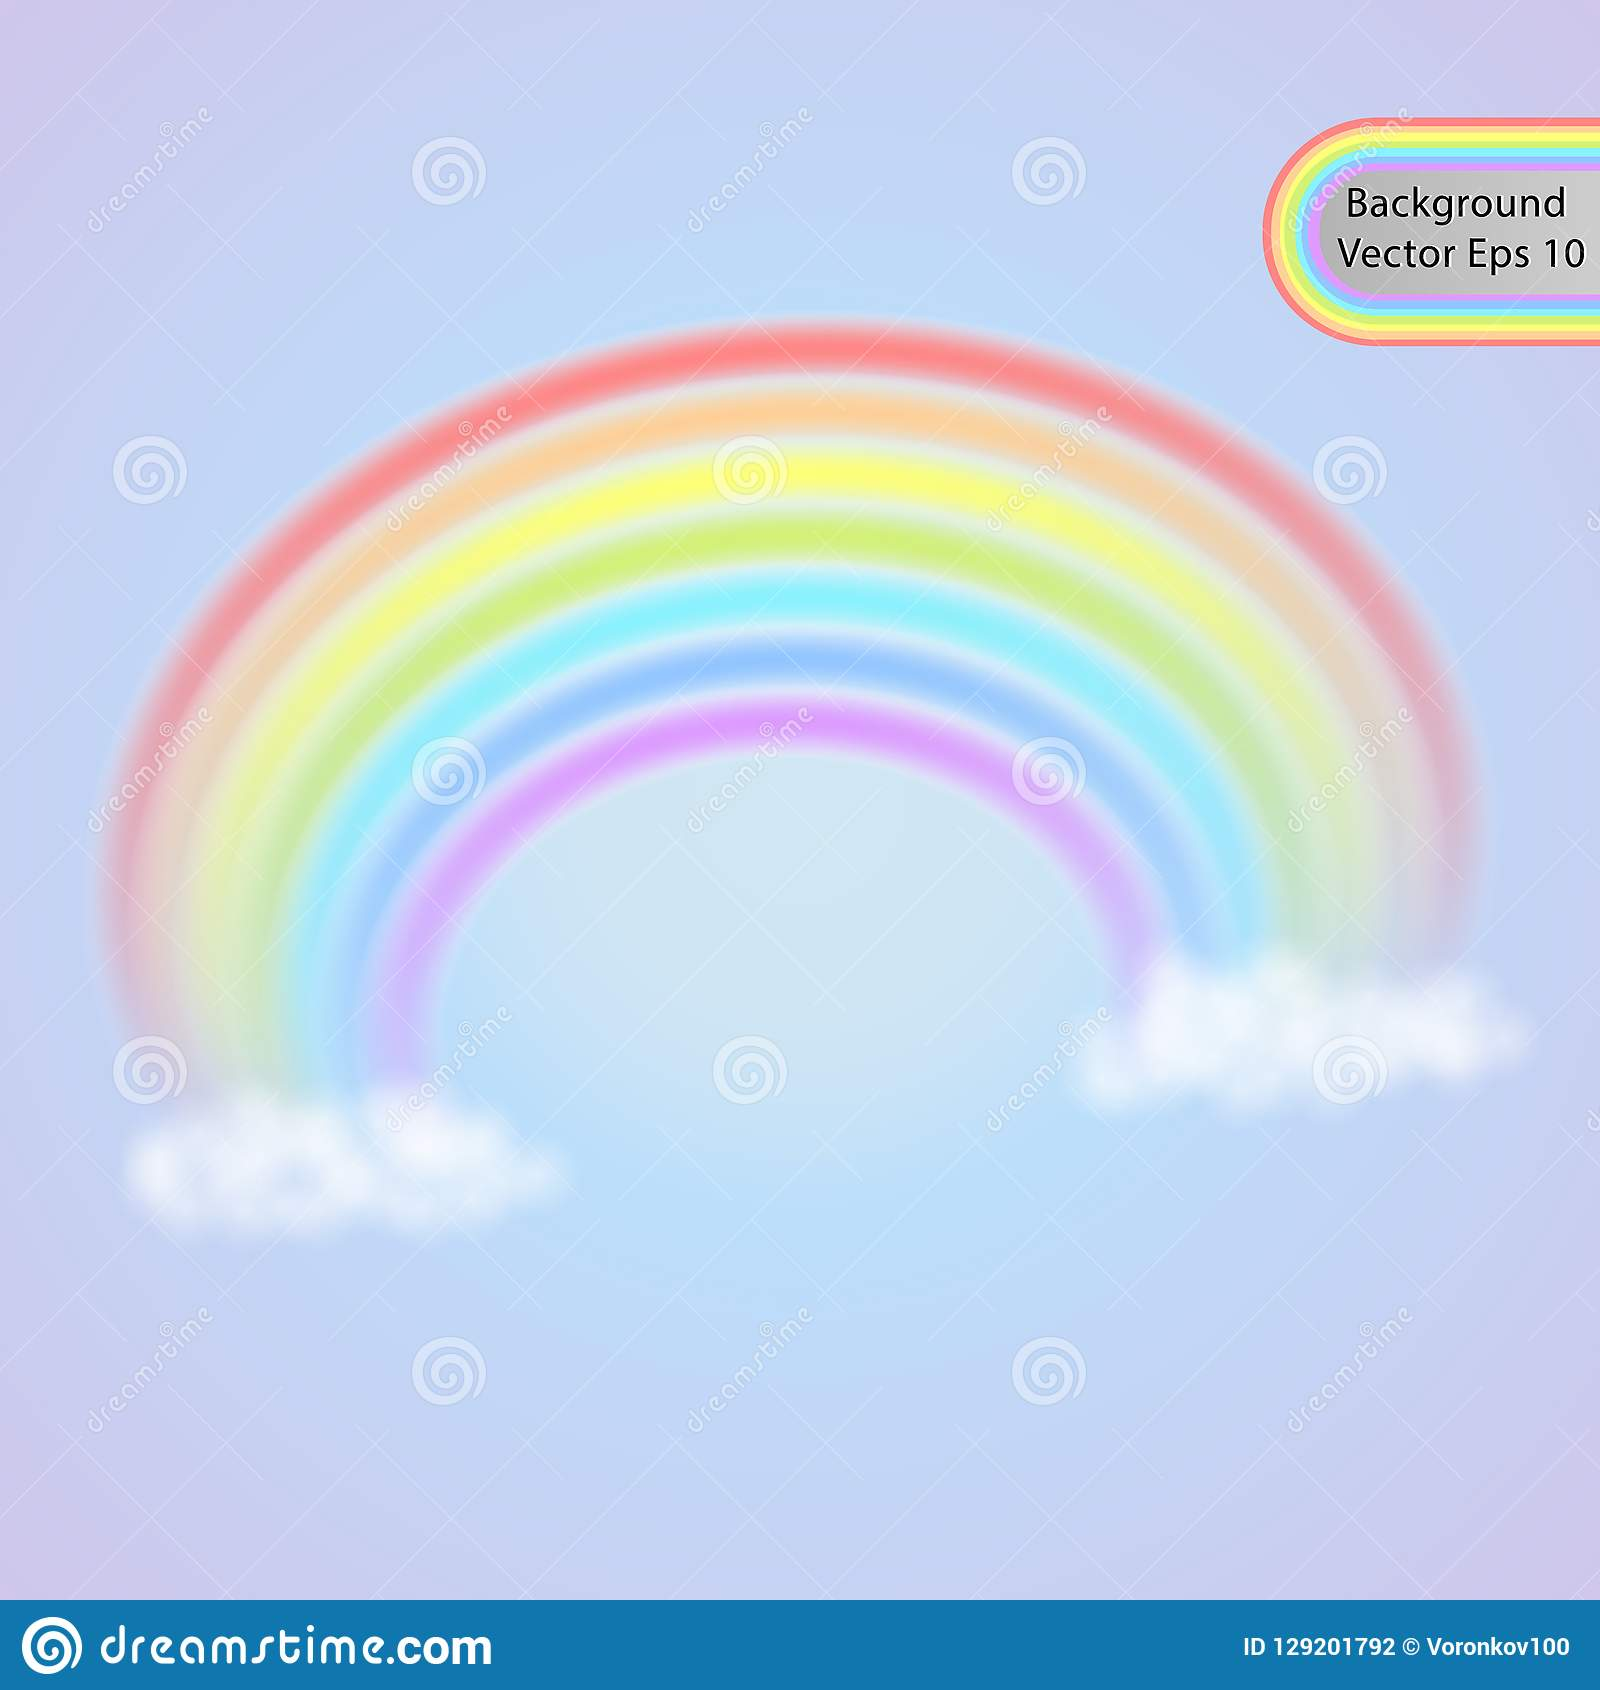 Rainbow In The Clouds Realistic Rainbow Effect In The Form Of An Arch In A Gentle Color Palette Vector Stock Vector Illustration Of Orange Drawing 129201792